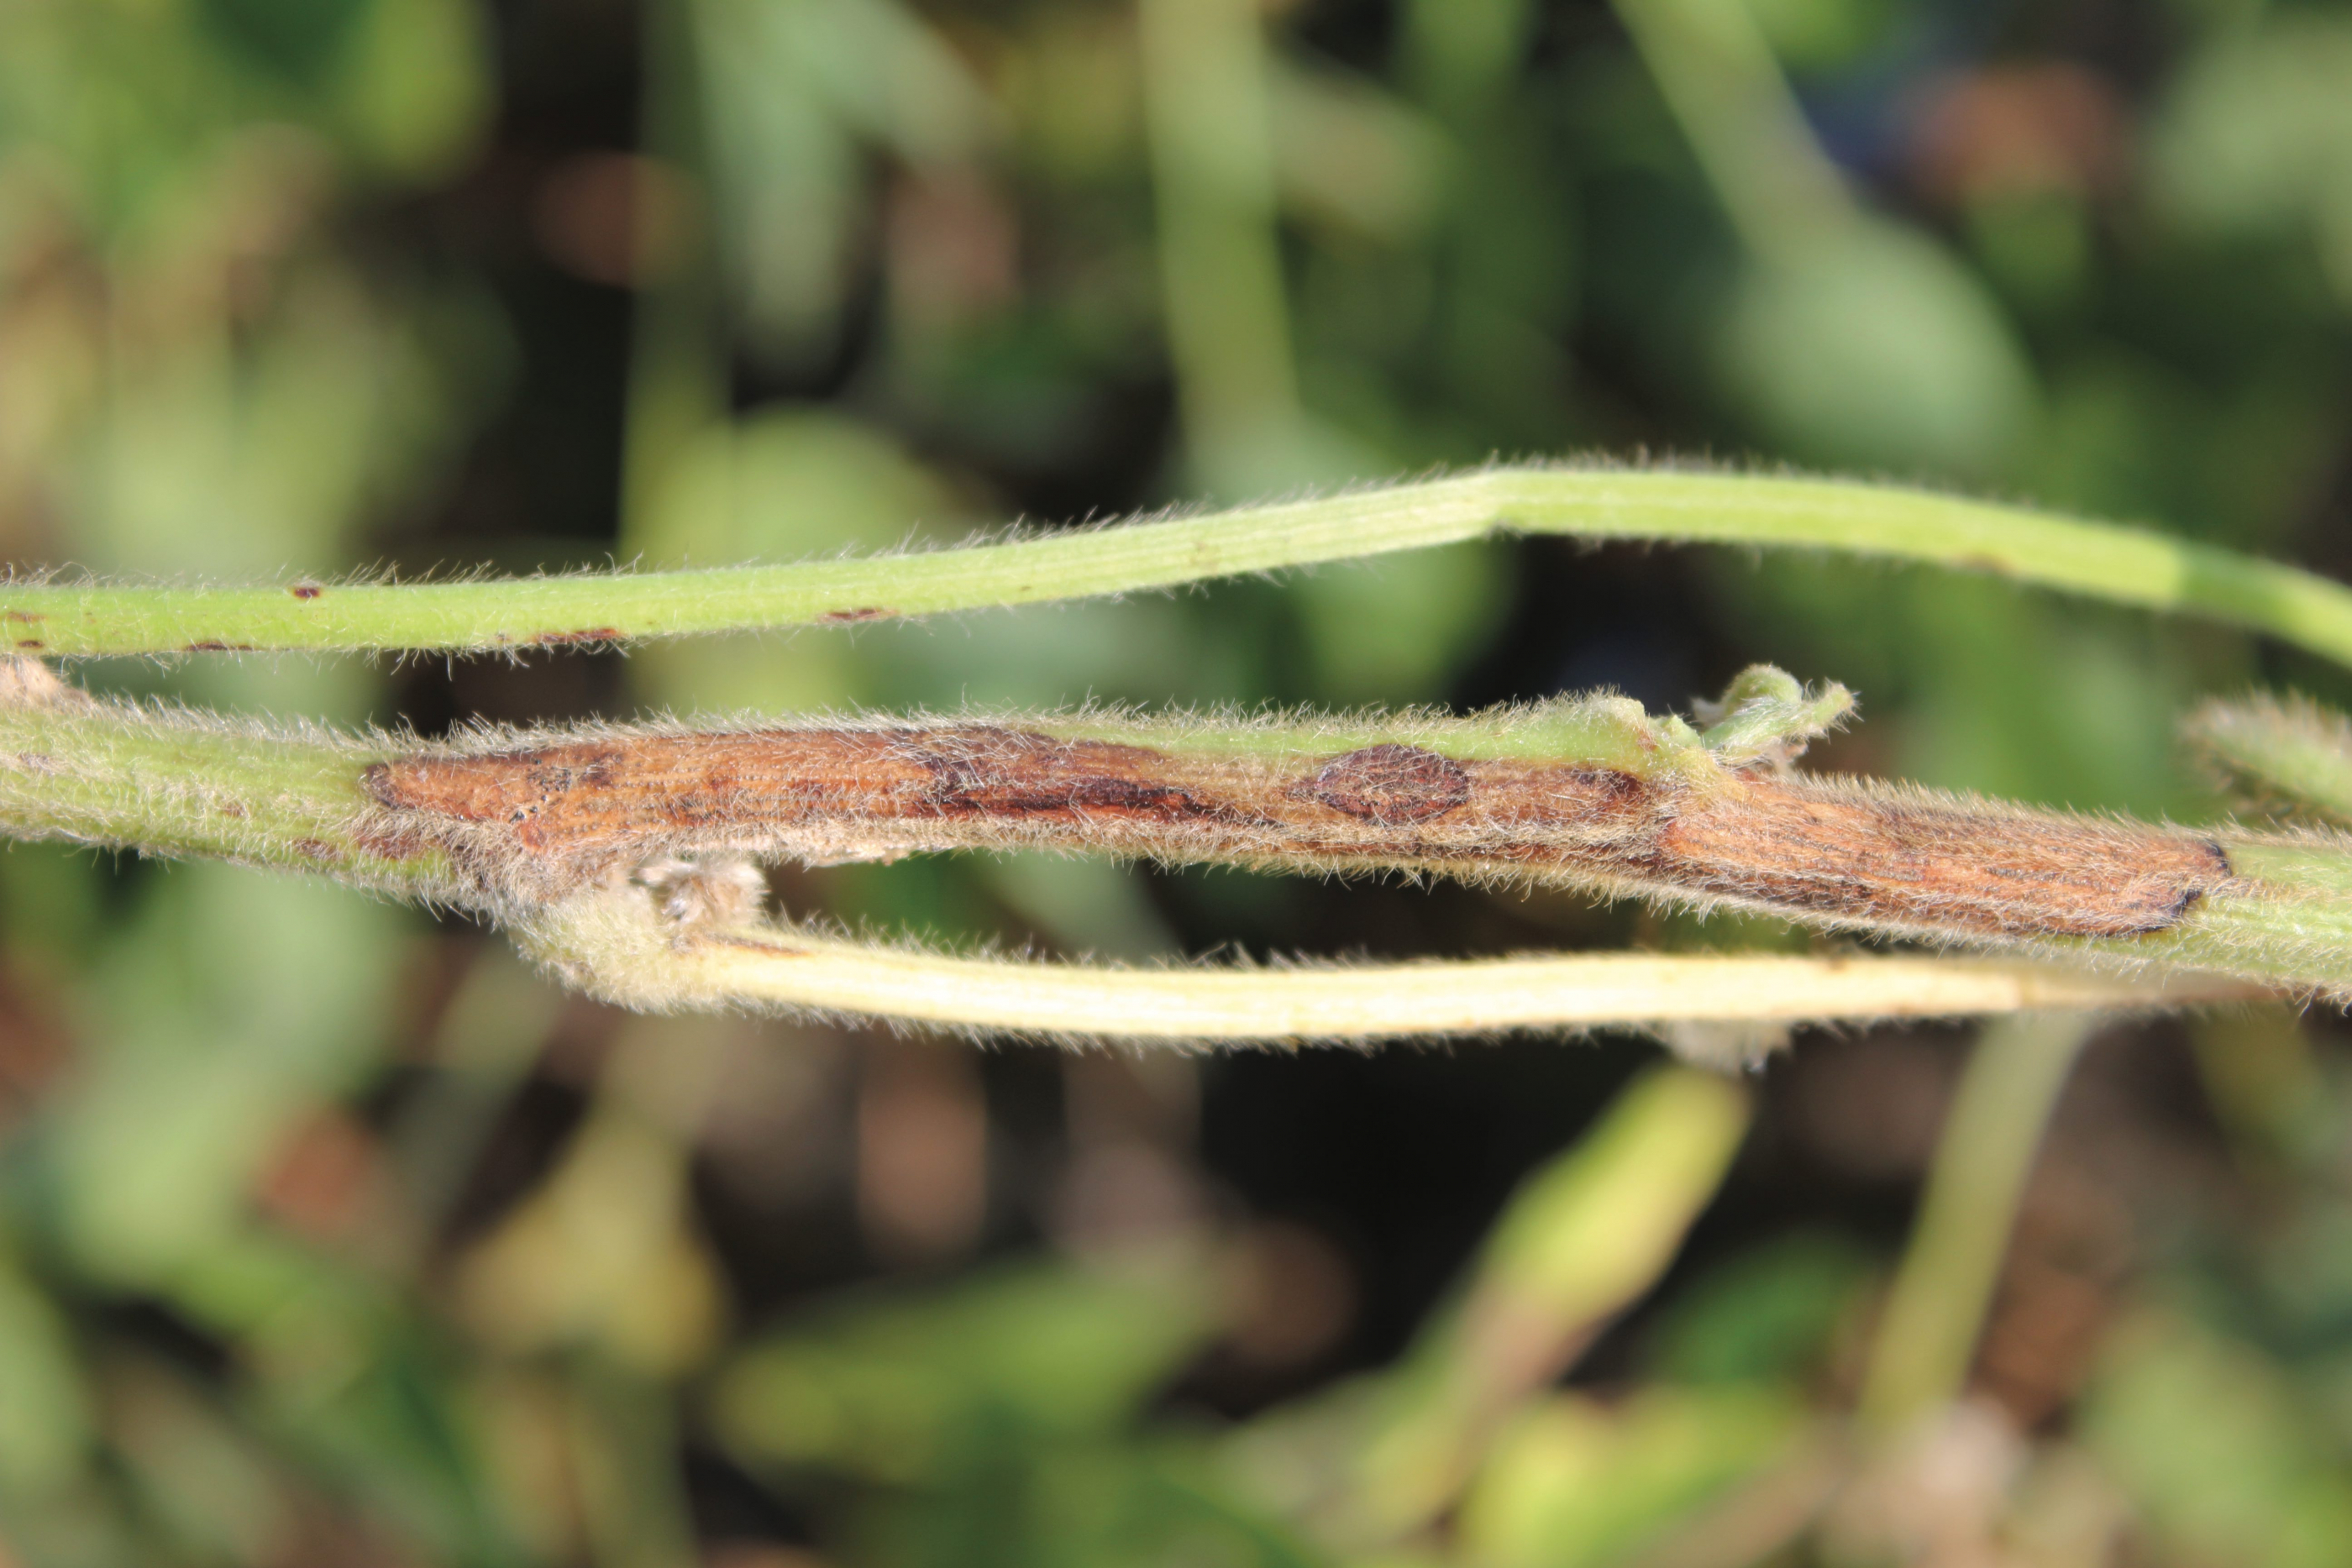 Figure 3. Cankers may extend over several nodes on the stem.